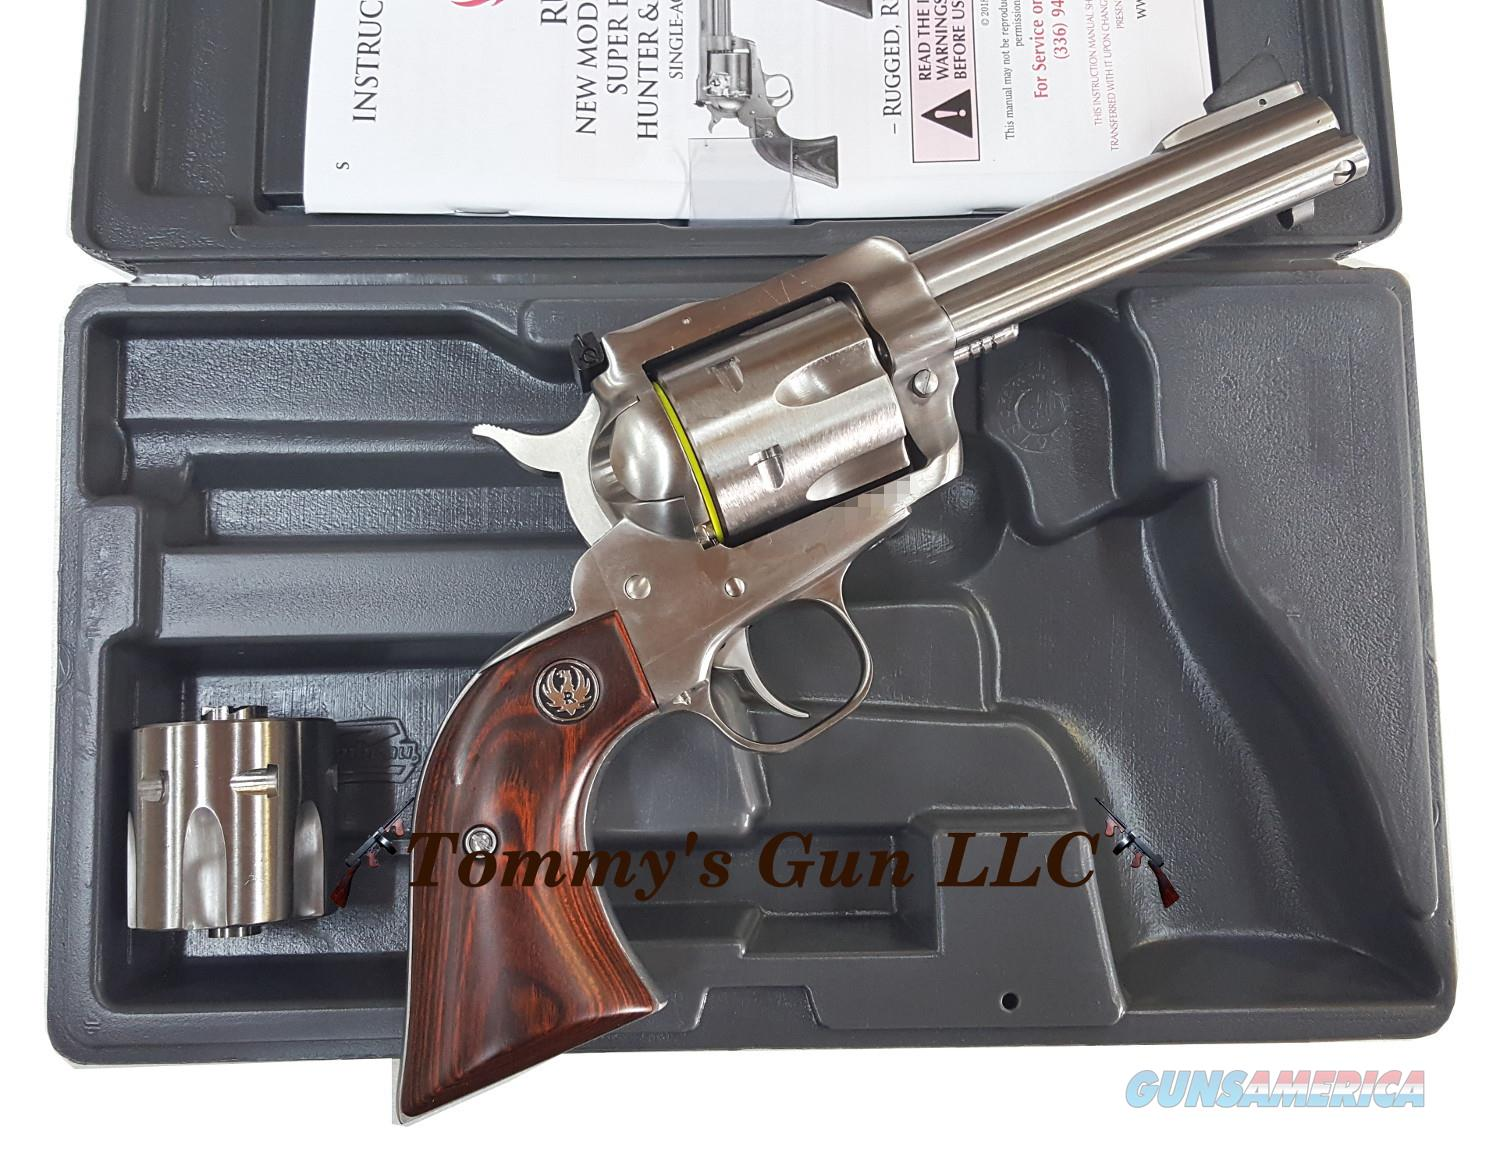 Ruger Blackhawk 10MM | 40 S&W 0476 BRAND NEW  Guns > Pistols > Ruger Single Action Revolvers > Blackhawk Type